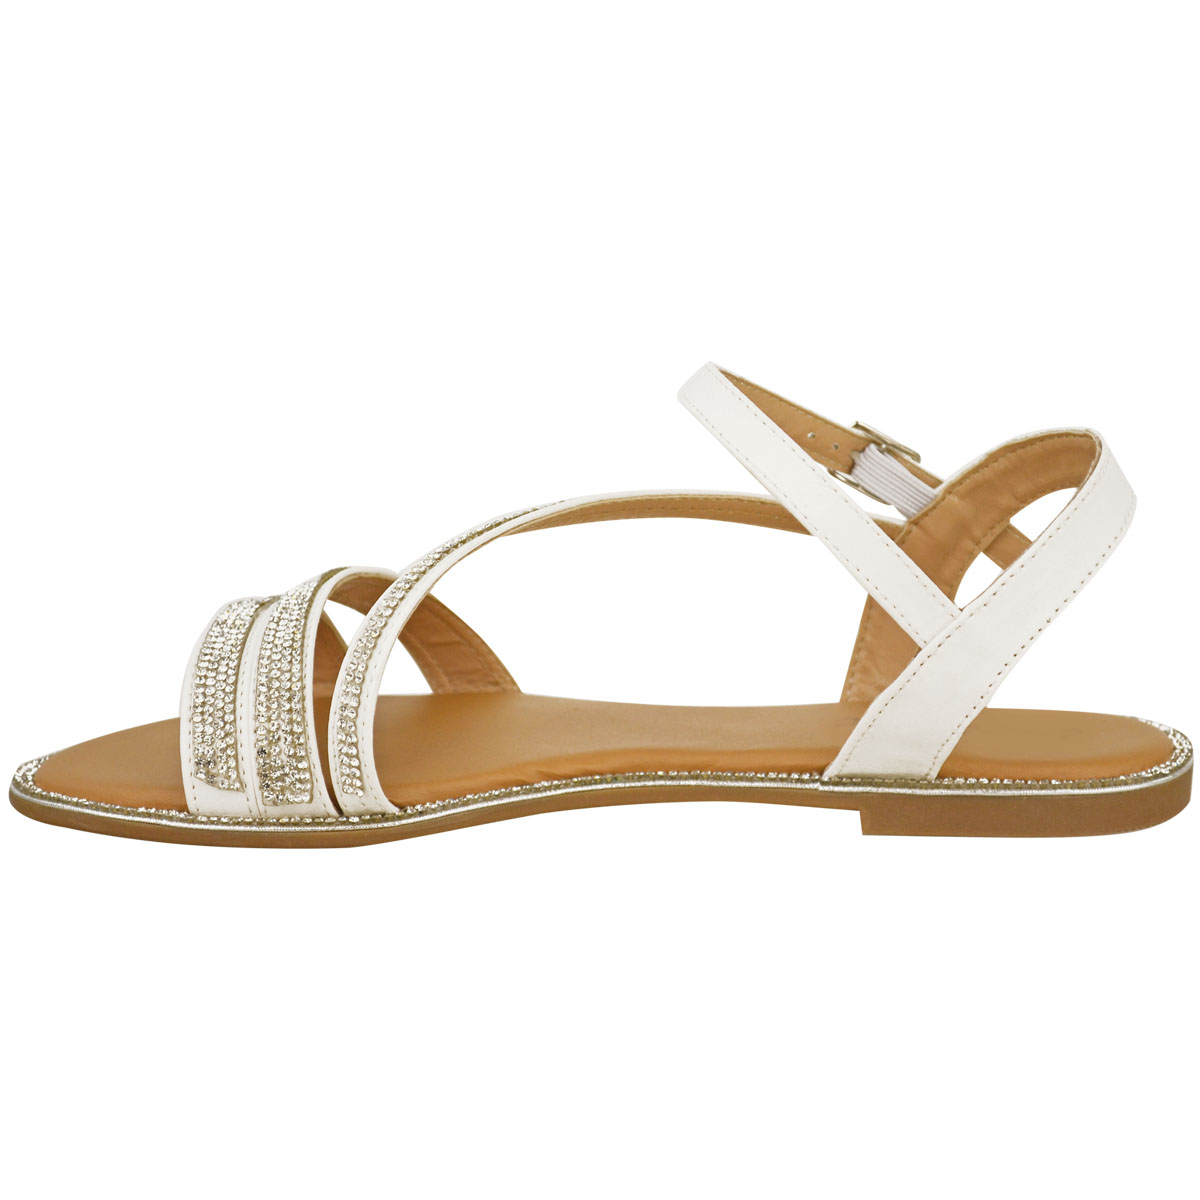 Free shipping on women's flat sandals at ingmecanica.ml Shop the latest styles from Birkenstock, Tory Burch, Steve Madden and more. Totally free shipping & returns.